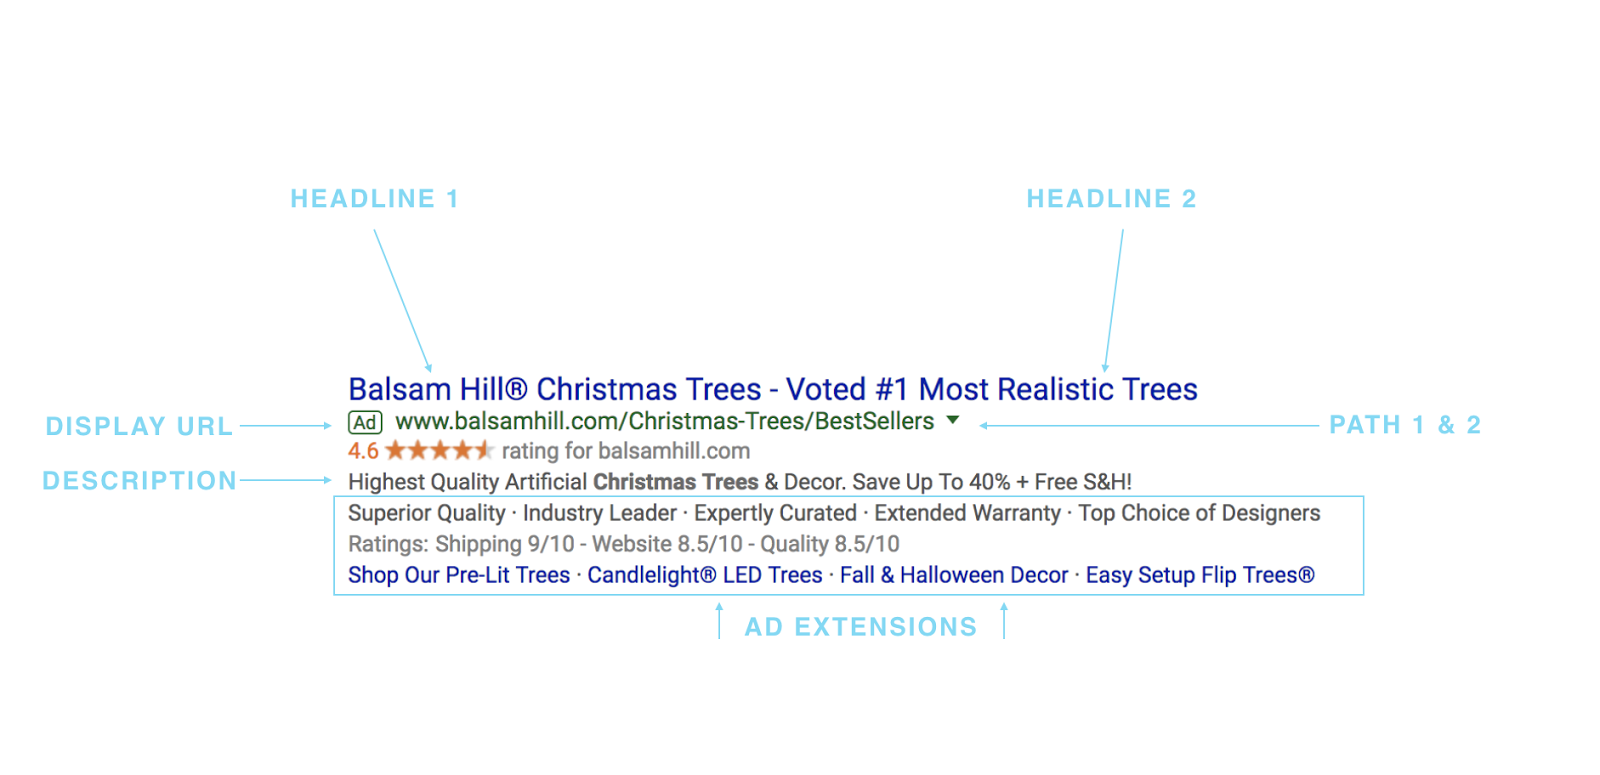 This Christmas tree store is putting their ad extensions to good use.